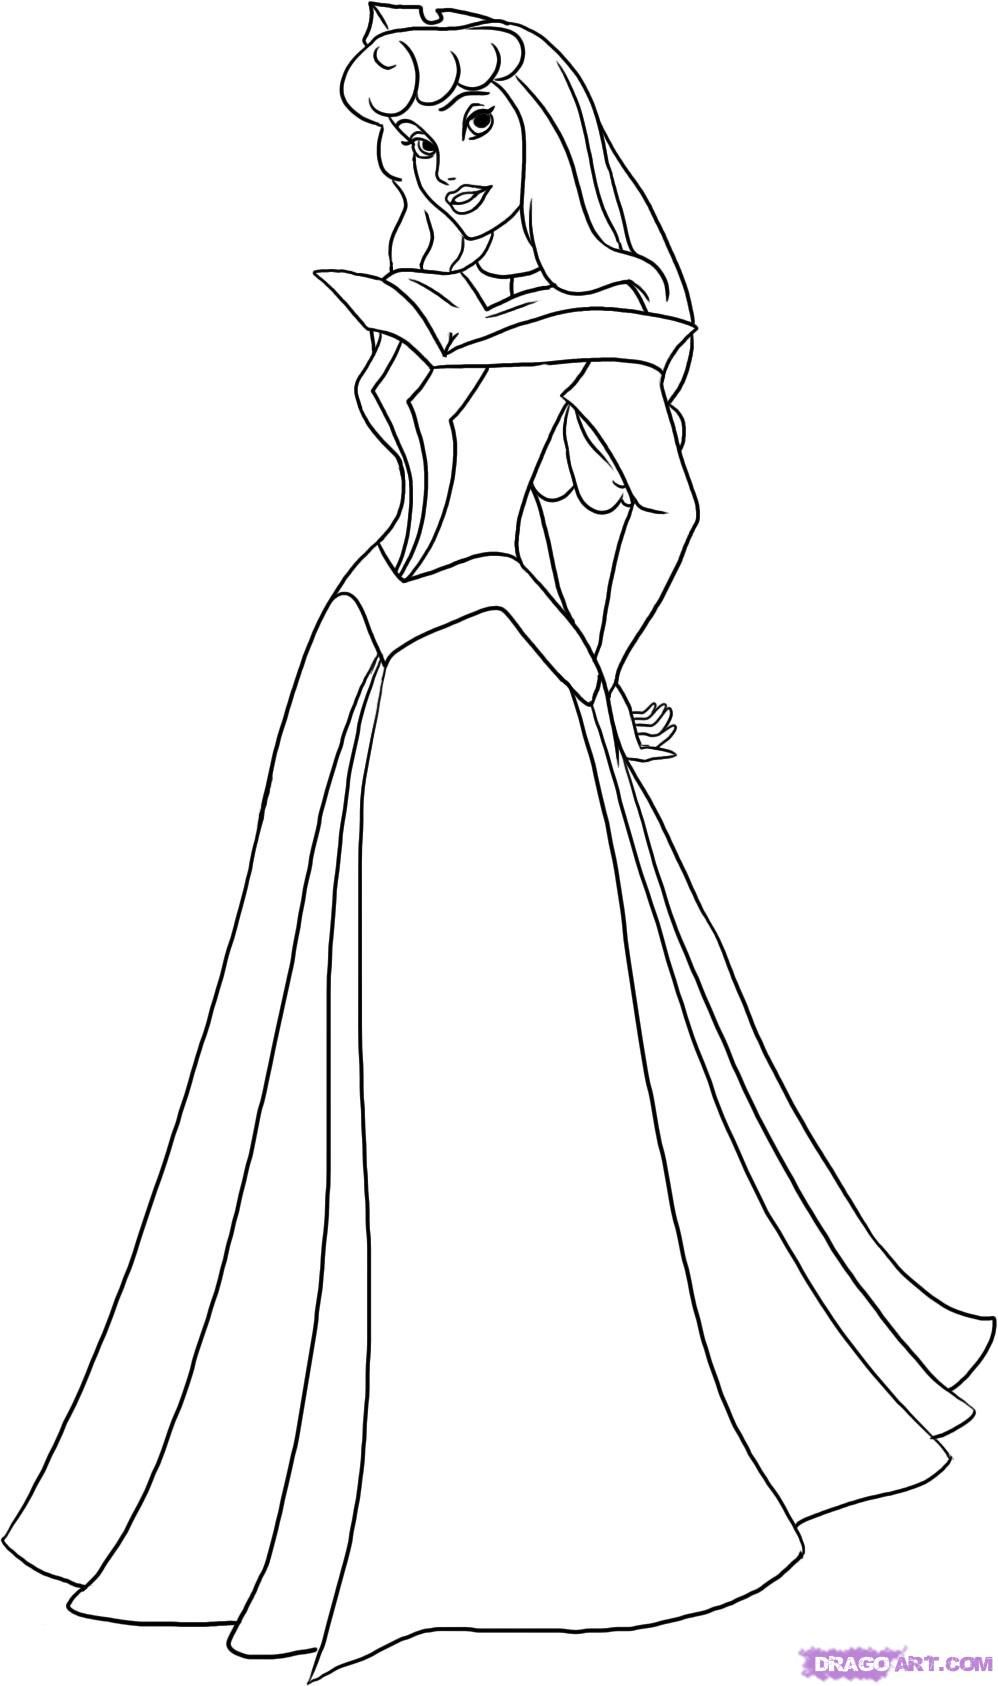 Eiskönigin Schloss Ausmalbilder : Princess Aurora Coloring Page Sleeping Beauty Pinterest